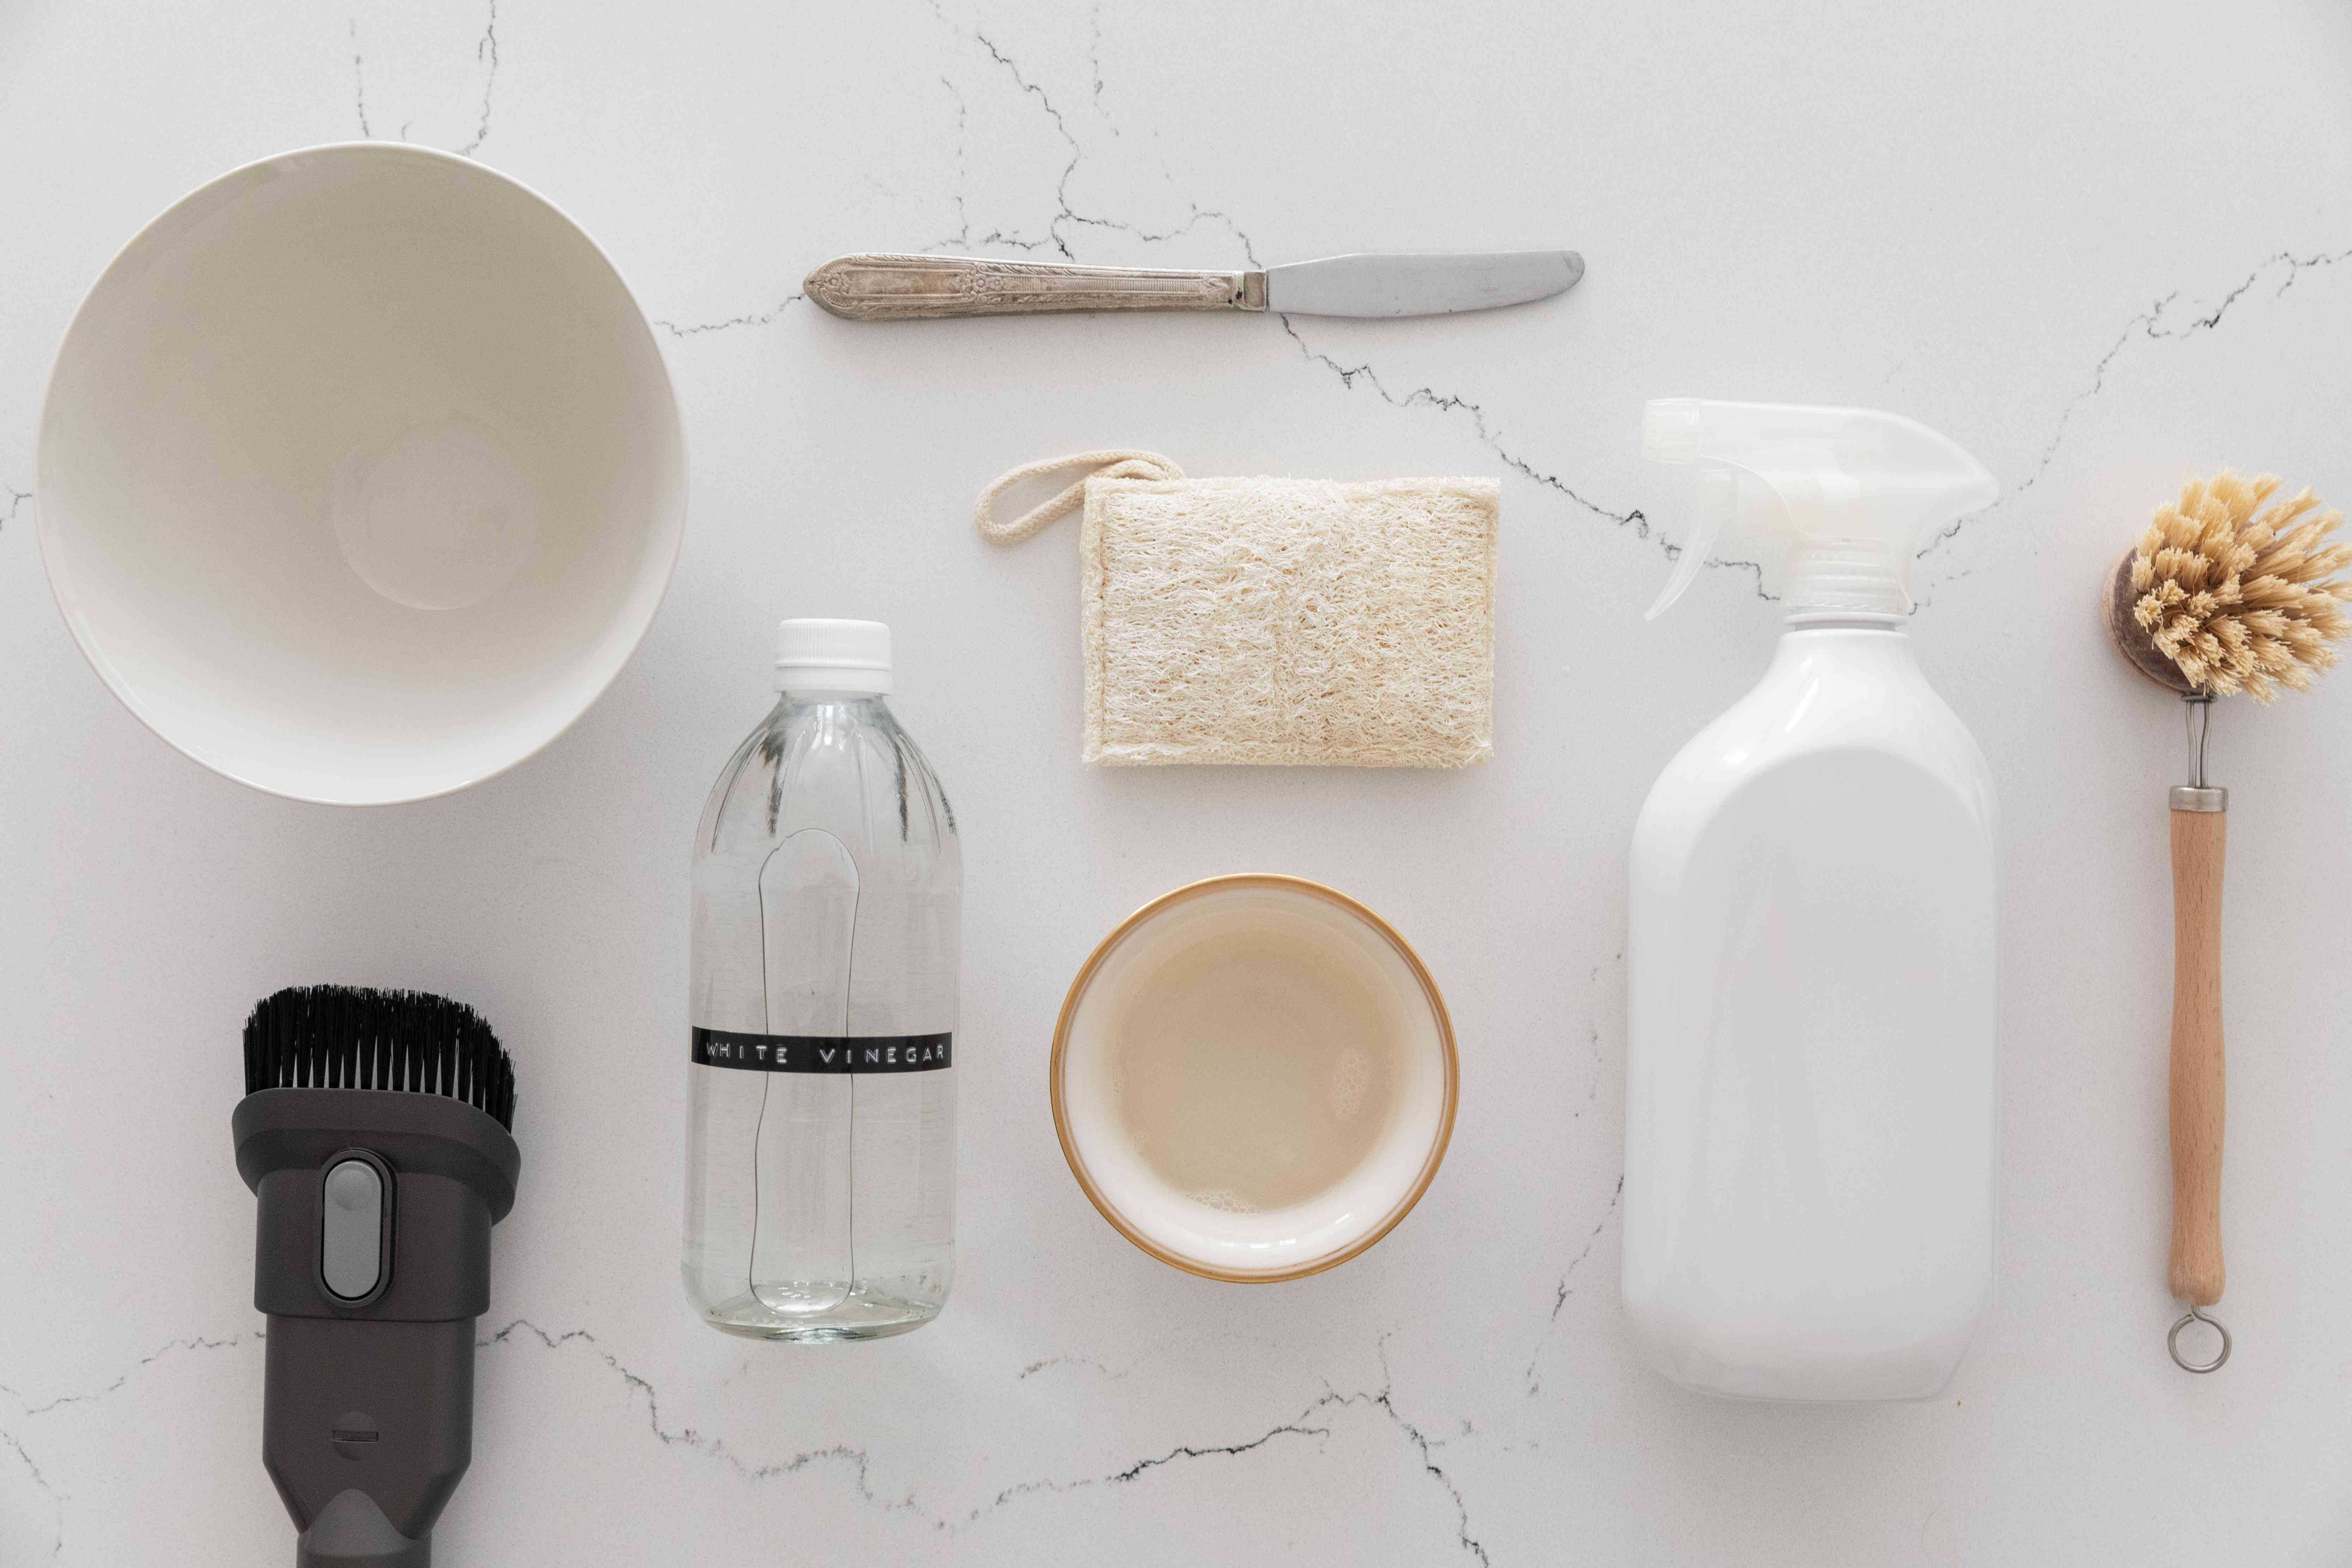 materials for removing cream cheese stains